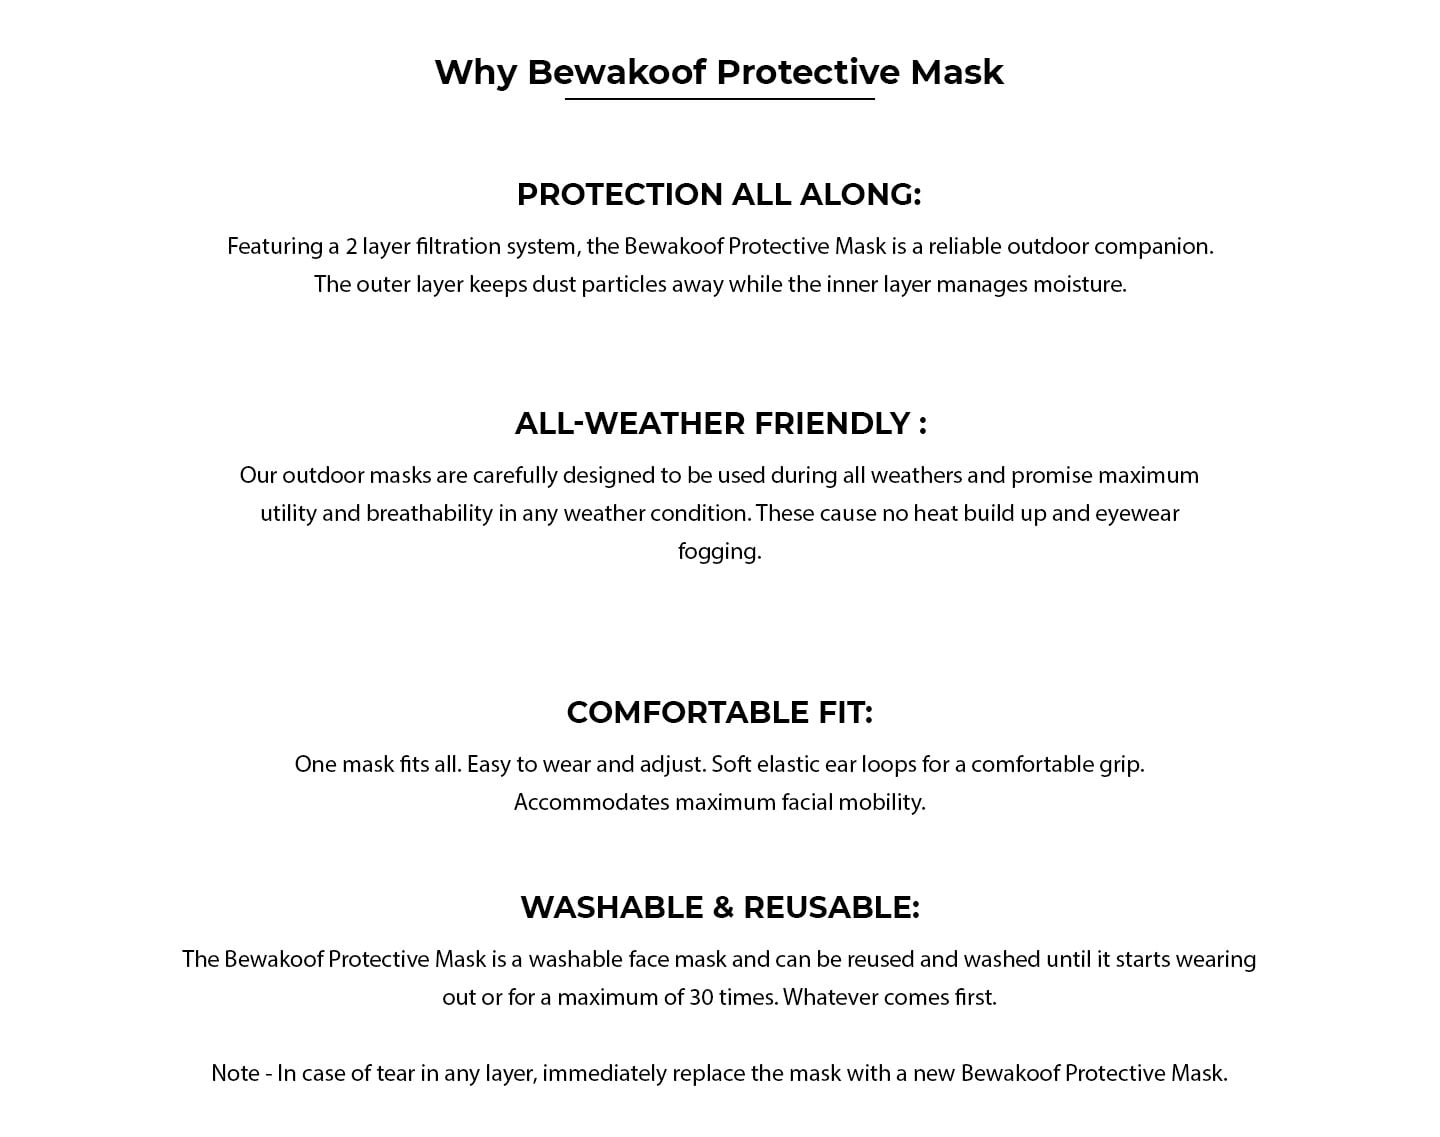 2-Layer Premium Protective Masks - Pack of 3 (Jet black-Dark olive-Jet black) Description Image Website 1@Bewakoof.com